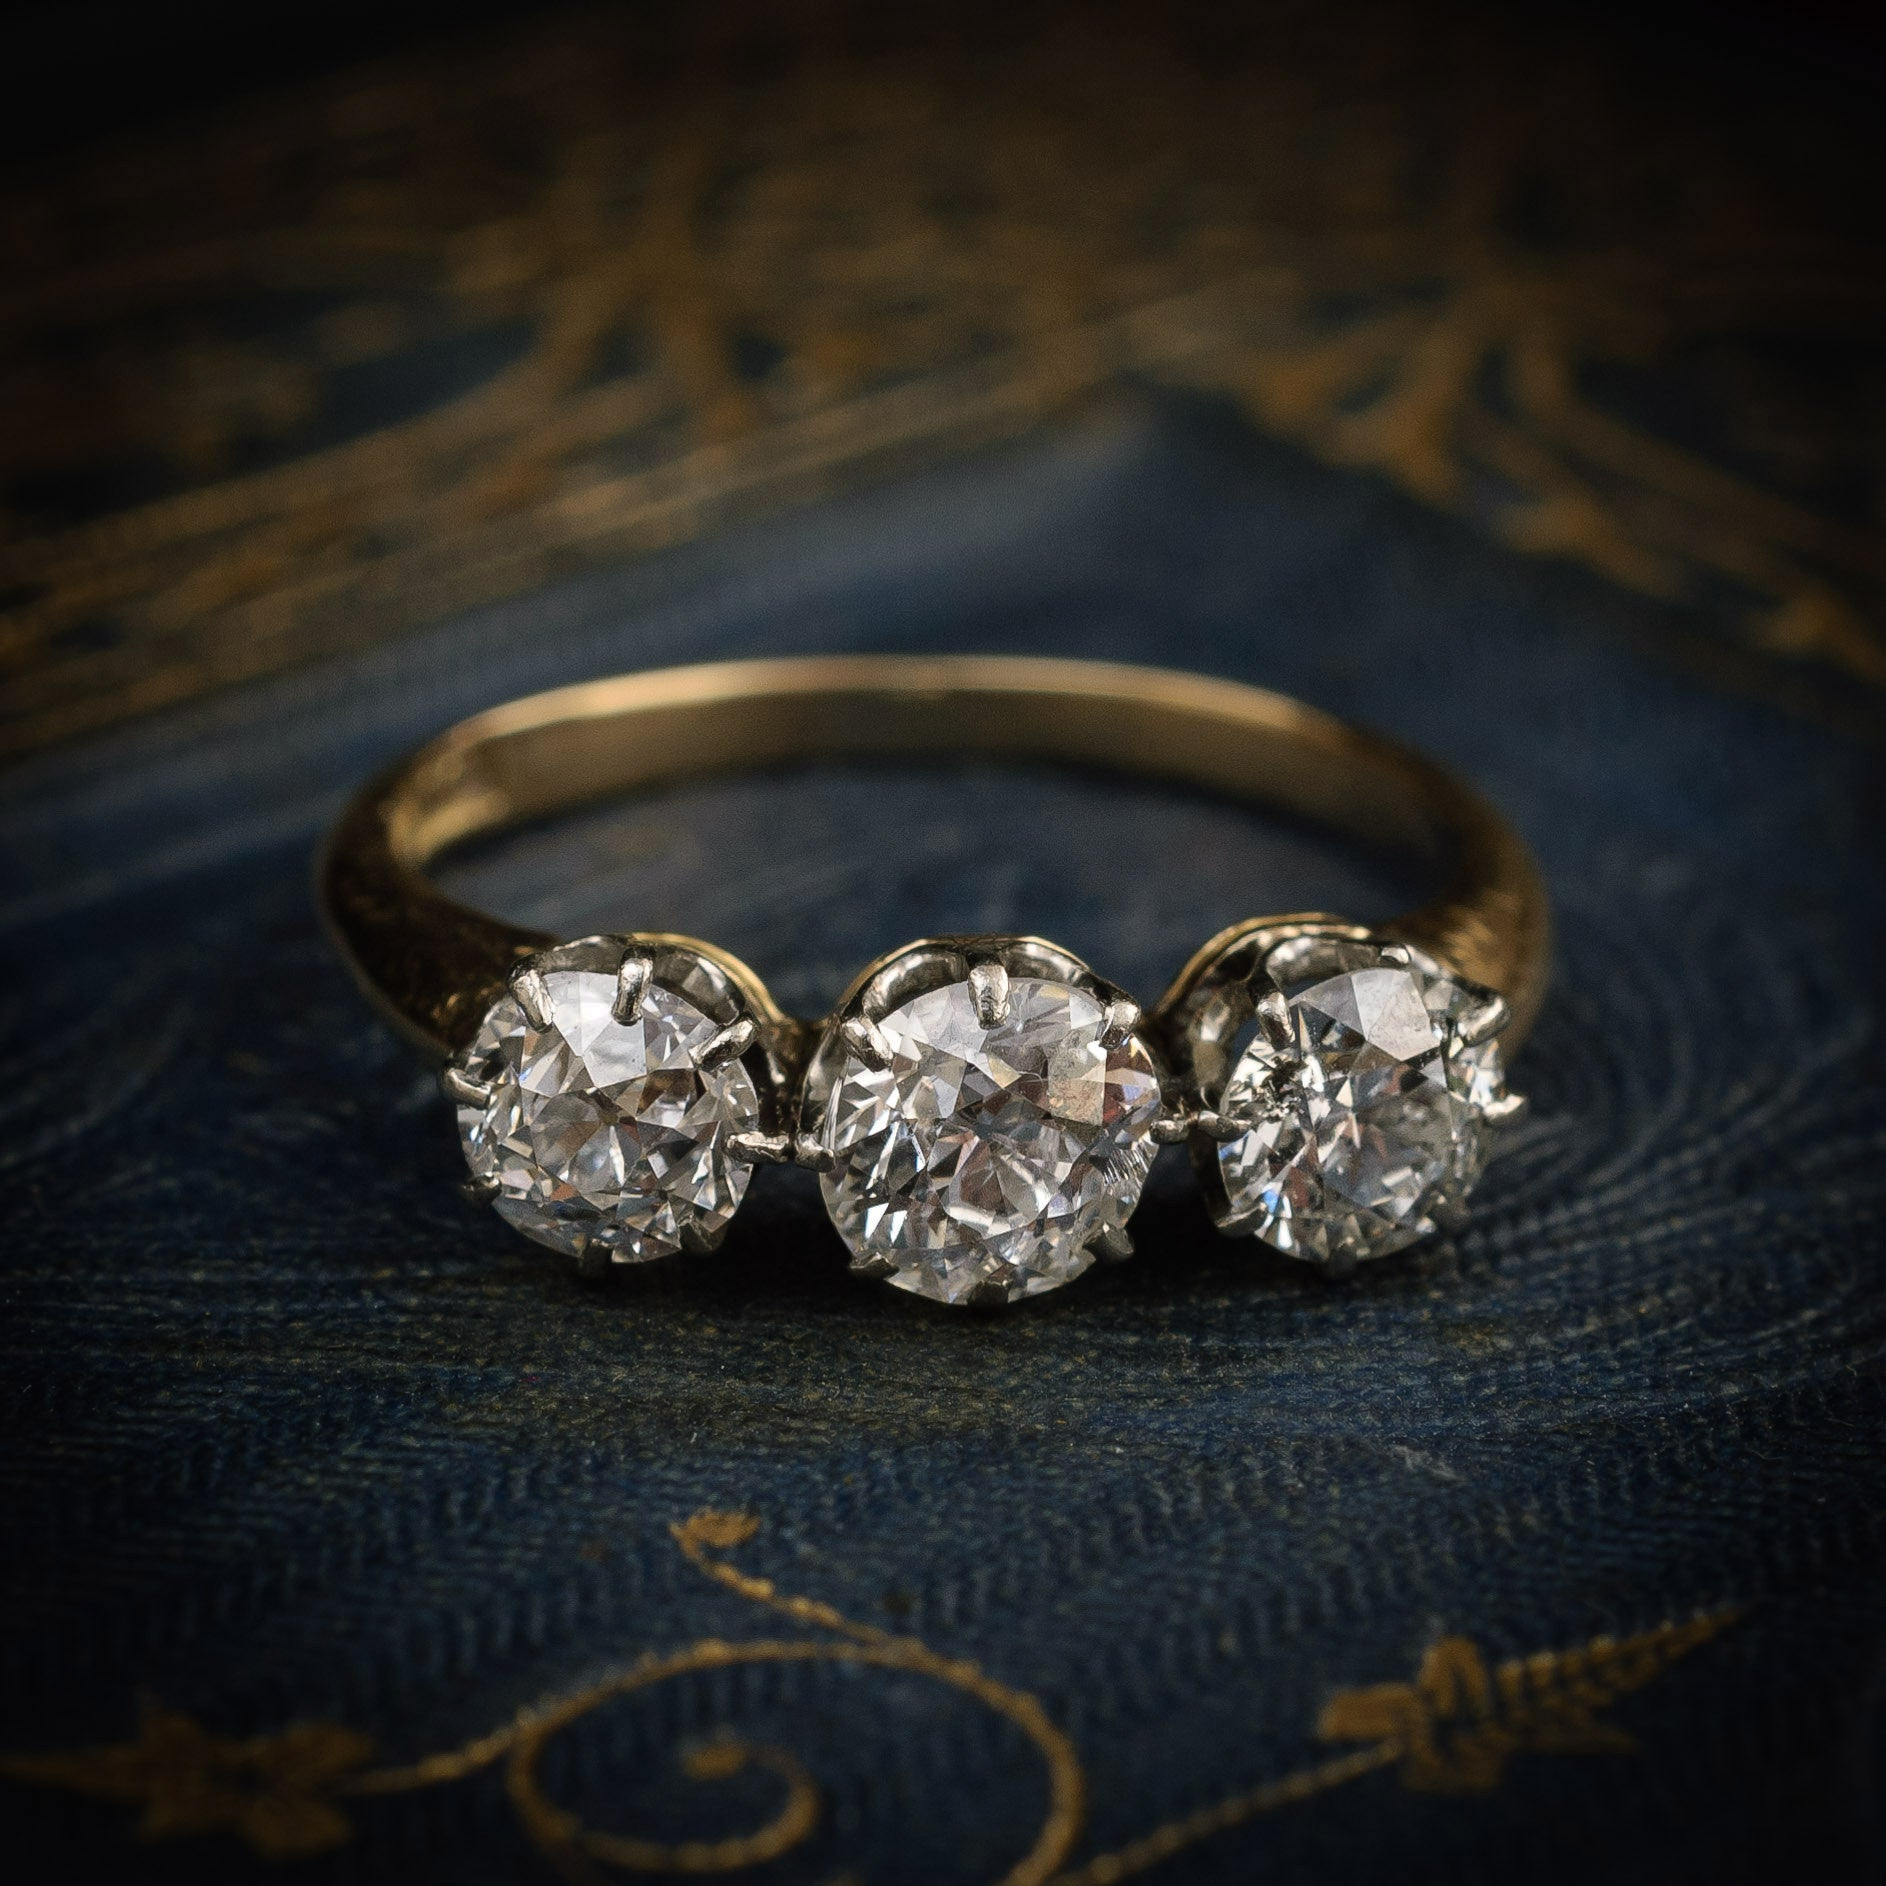 engagement classic elegant ring gorgeous halo diamond ctw of style rings fresh sapphire gold accents cushion beautiful